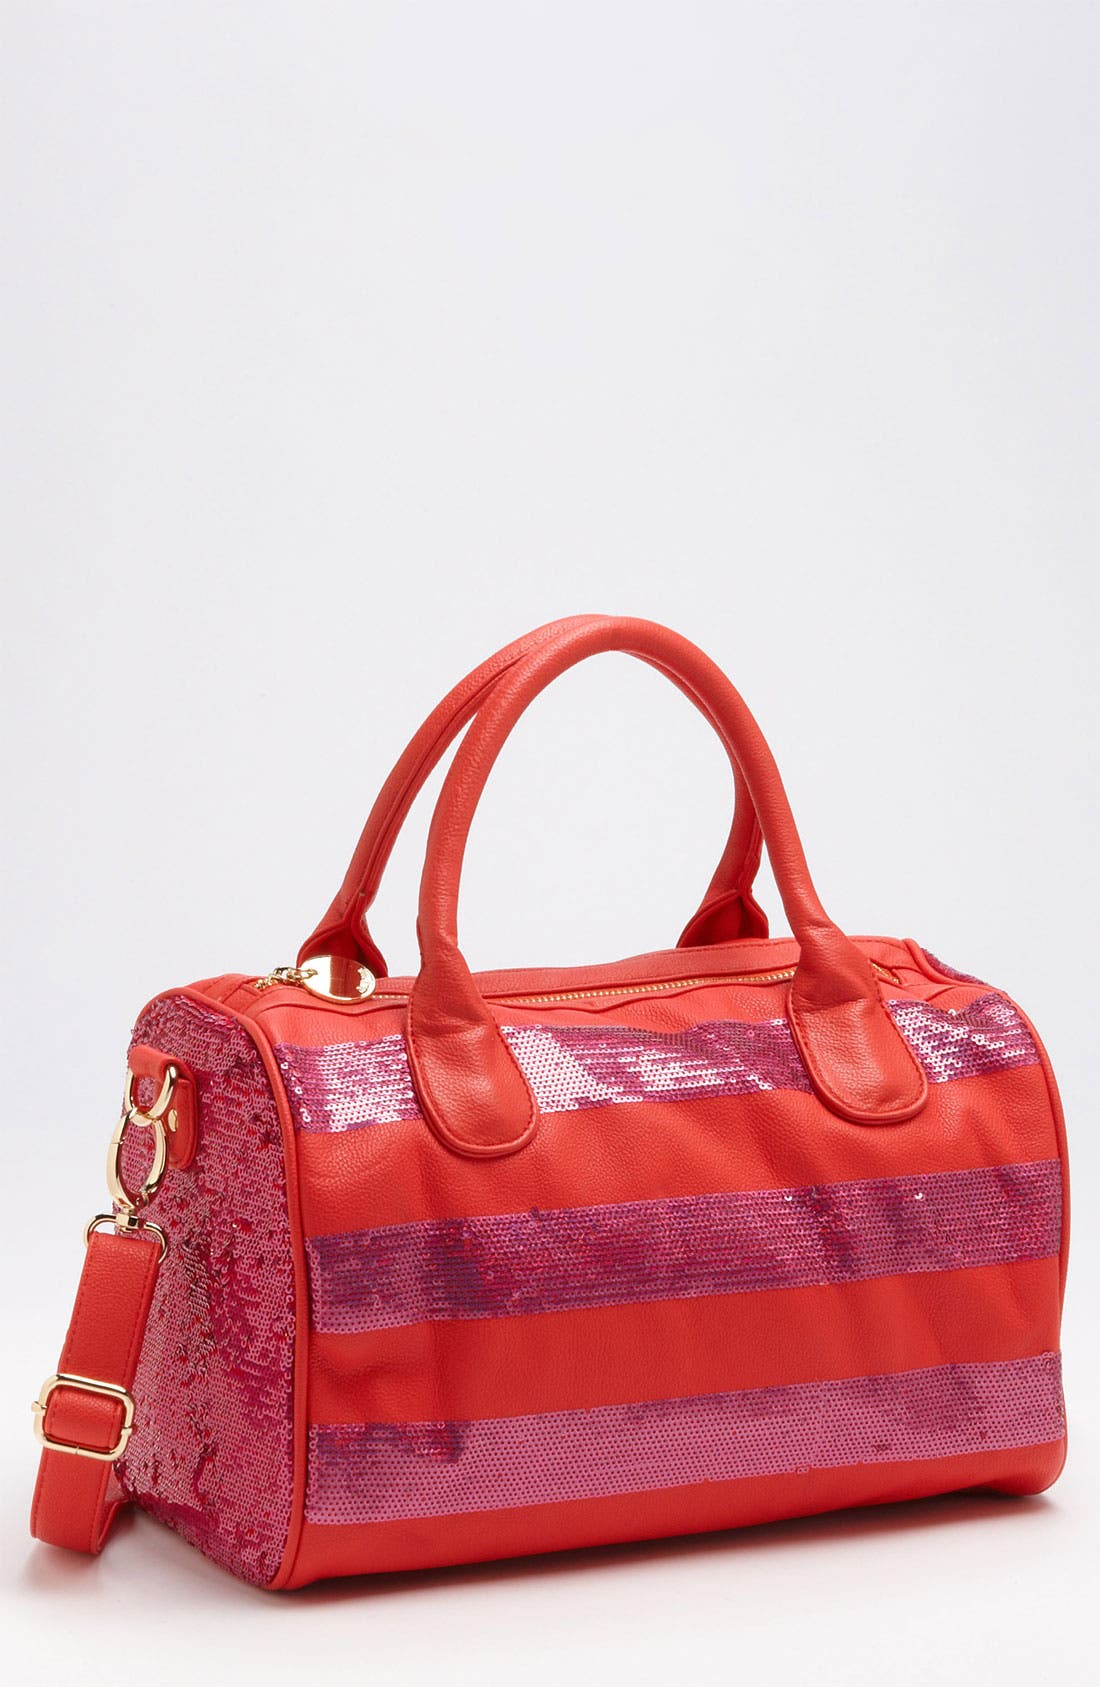 Main Image - Deux Lux 'Lucky' Sequin Stripe Satchel